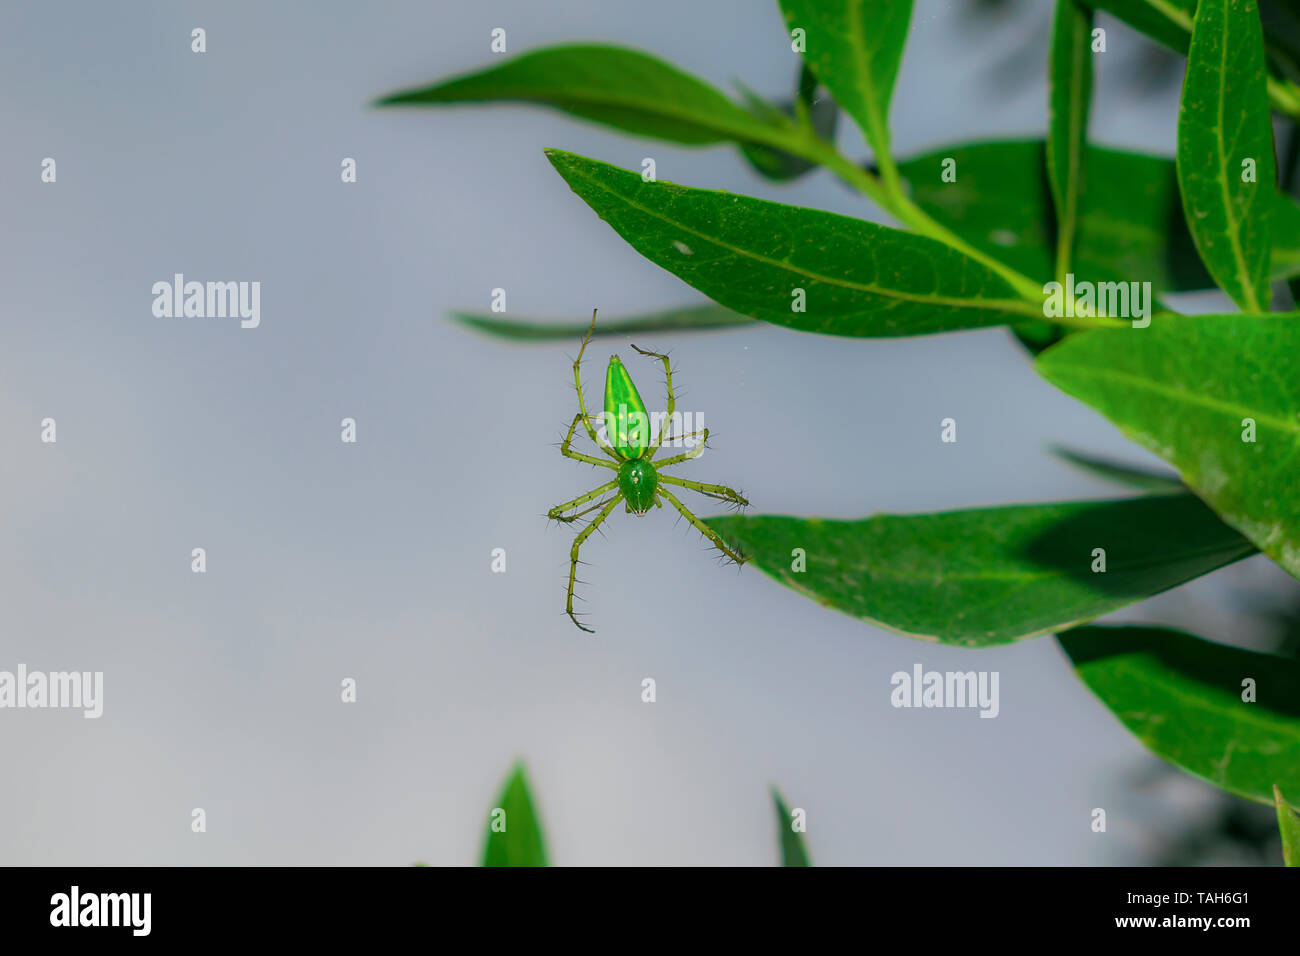 close up of a green spider hanging on by a leaf with a single thread,waiting for its prey. - Stock Image